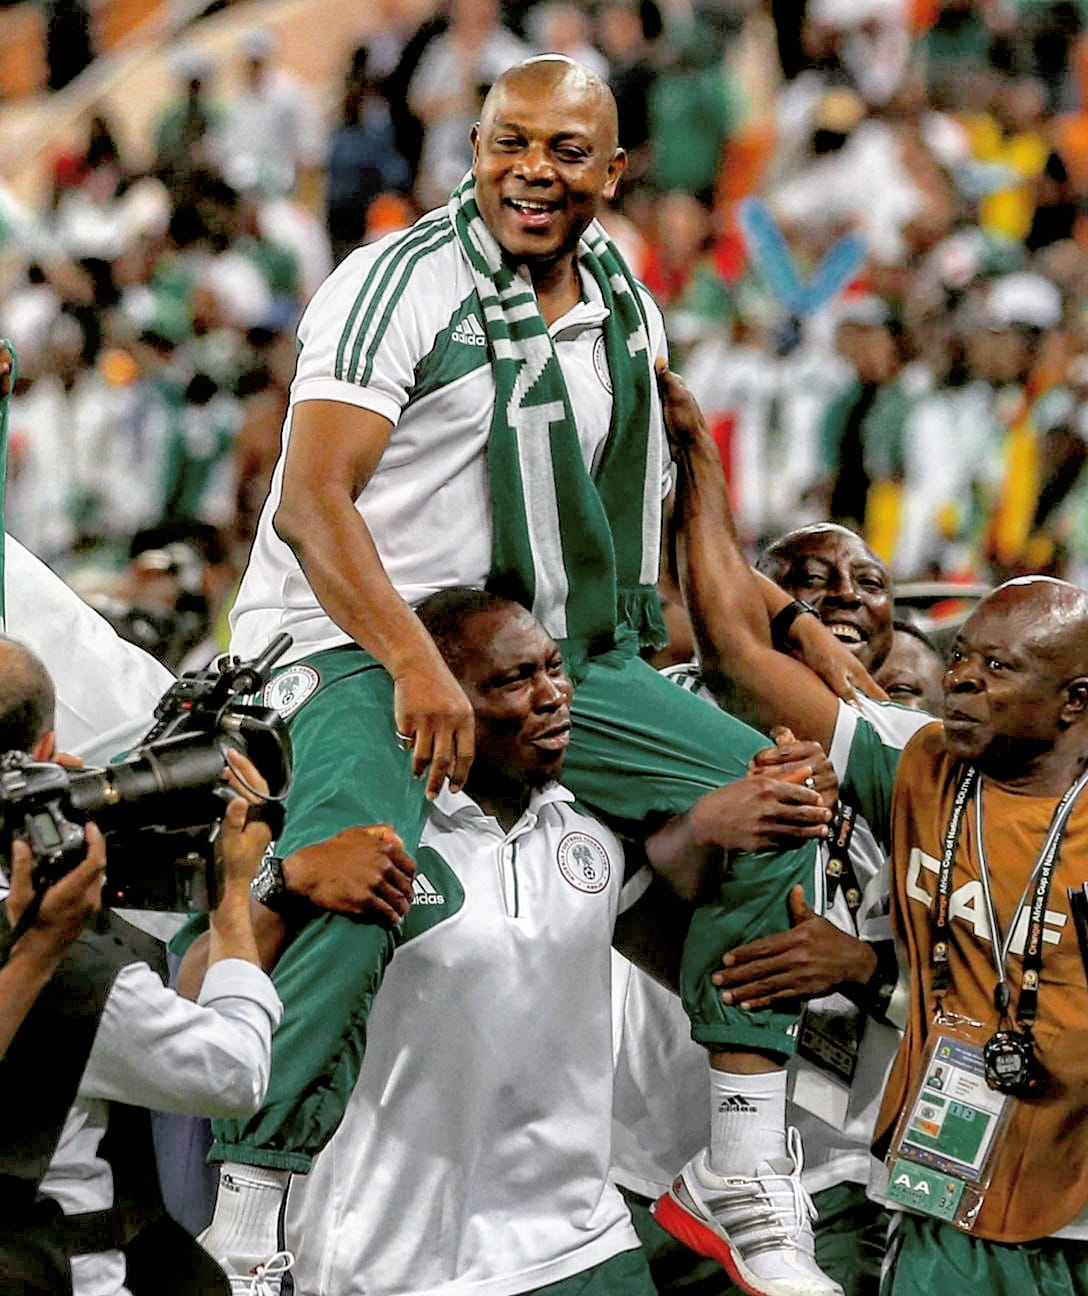 Yobo, CAF Pay Tribute To Late Keshi